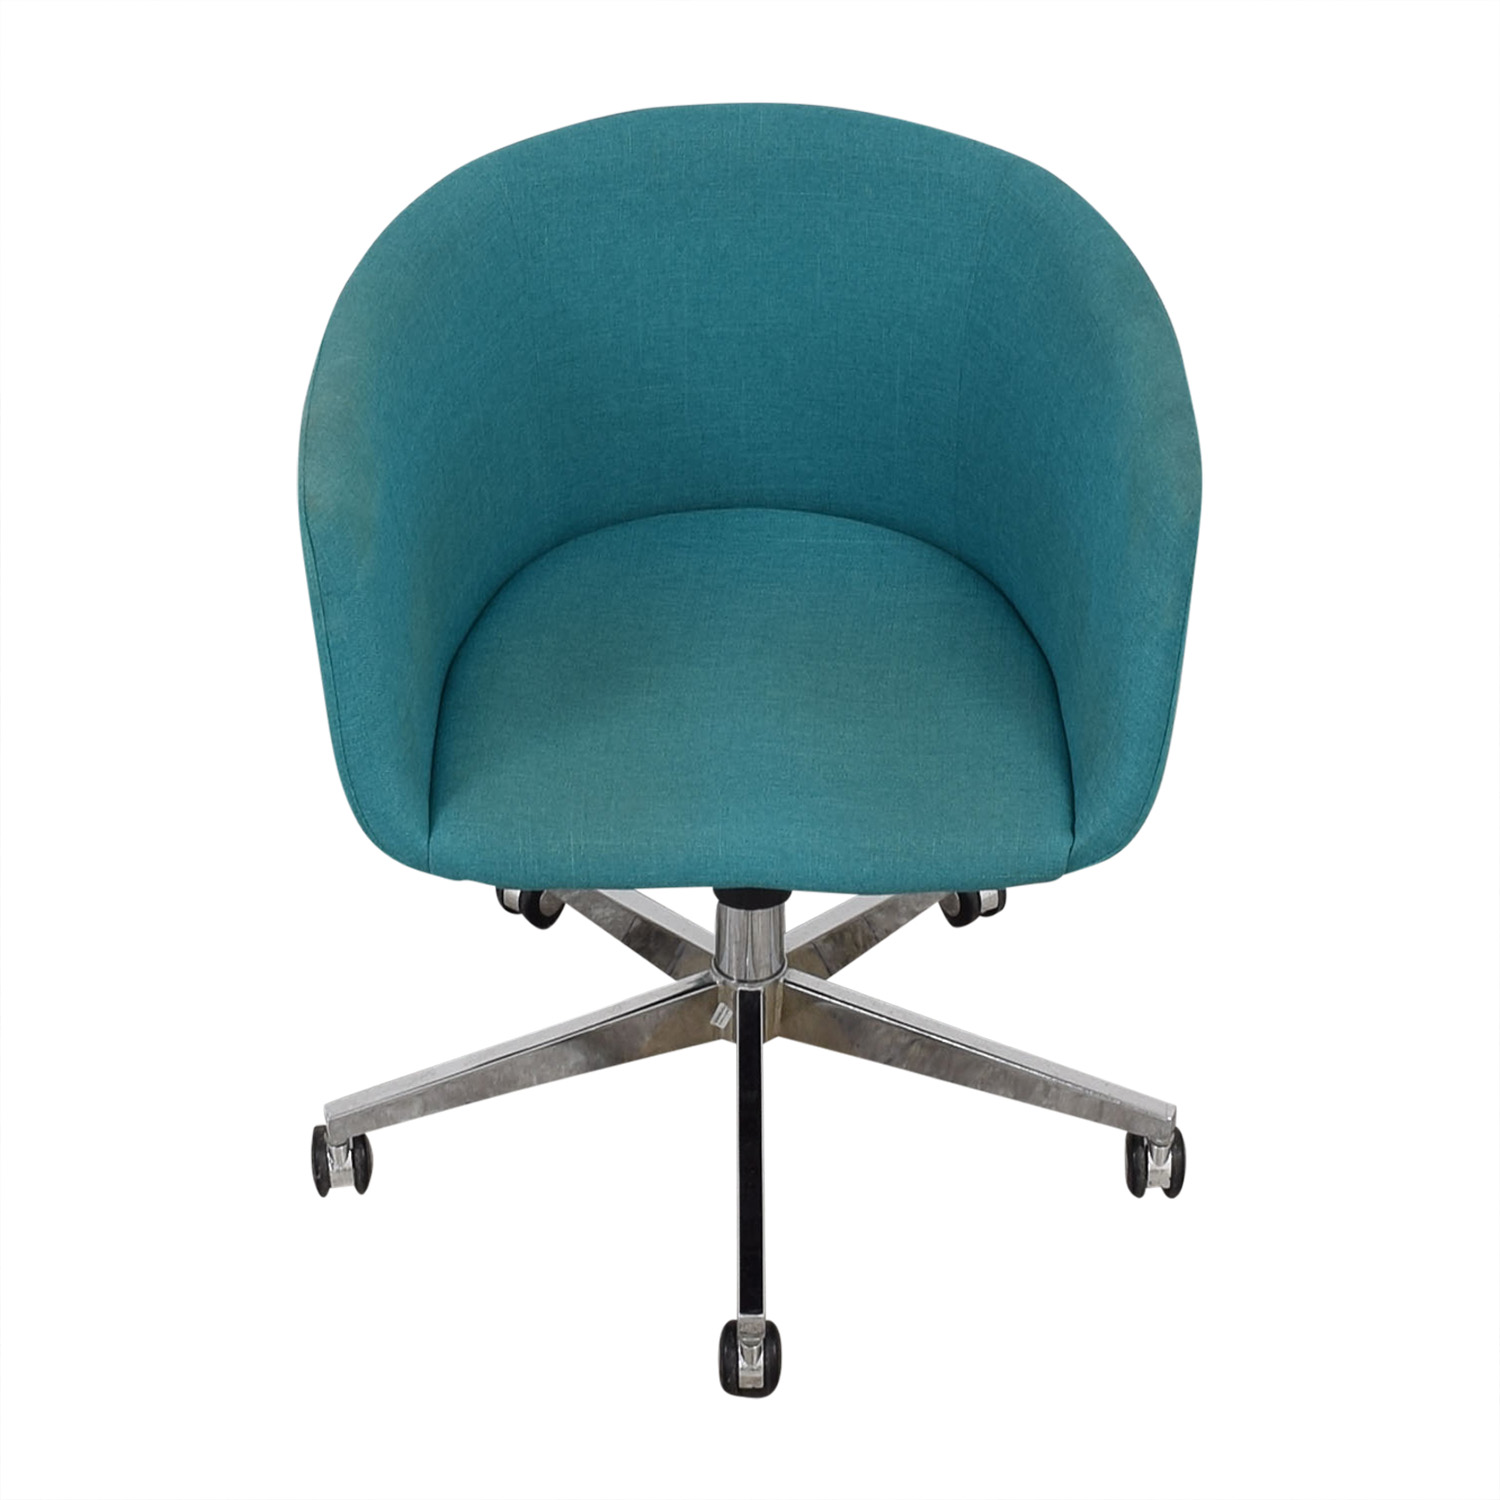 CB2 CB2 Coup Office Chair used